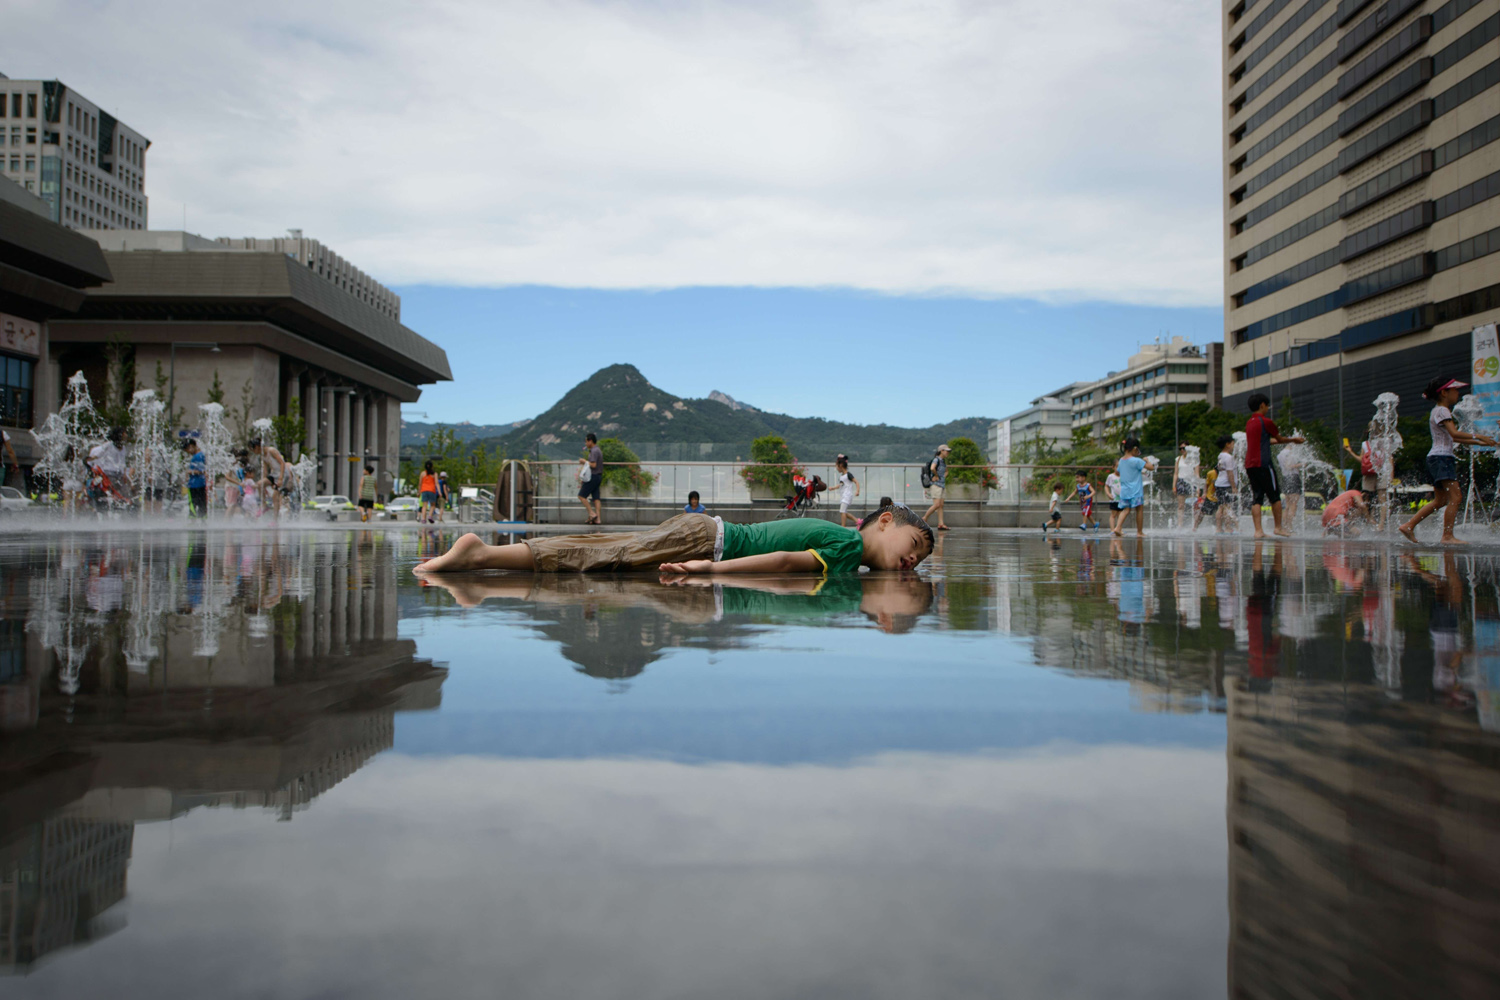 Aug. 1, 2014. A child lies in a pool of water to cool down in central Seoul, South Korea.